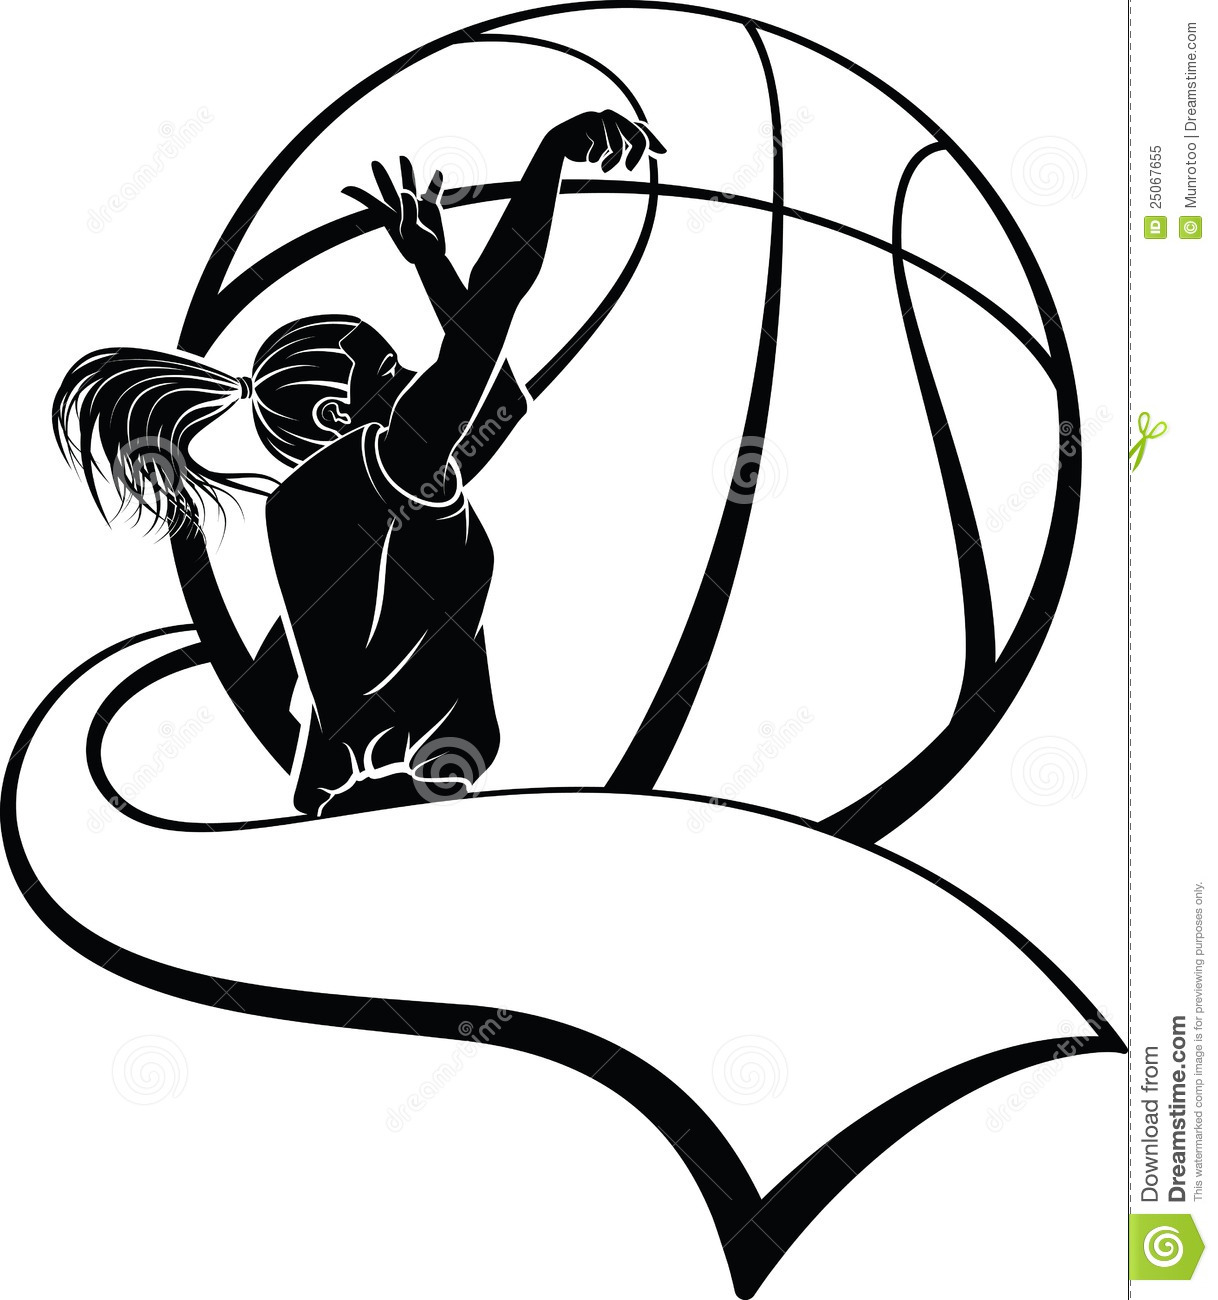 basketball player shooting clipart